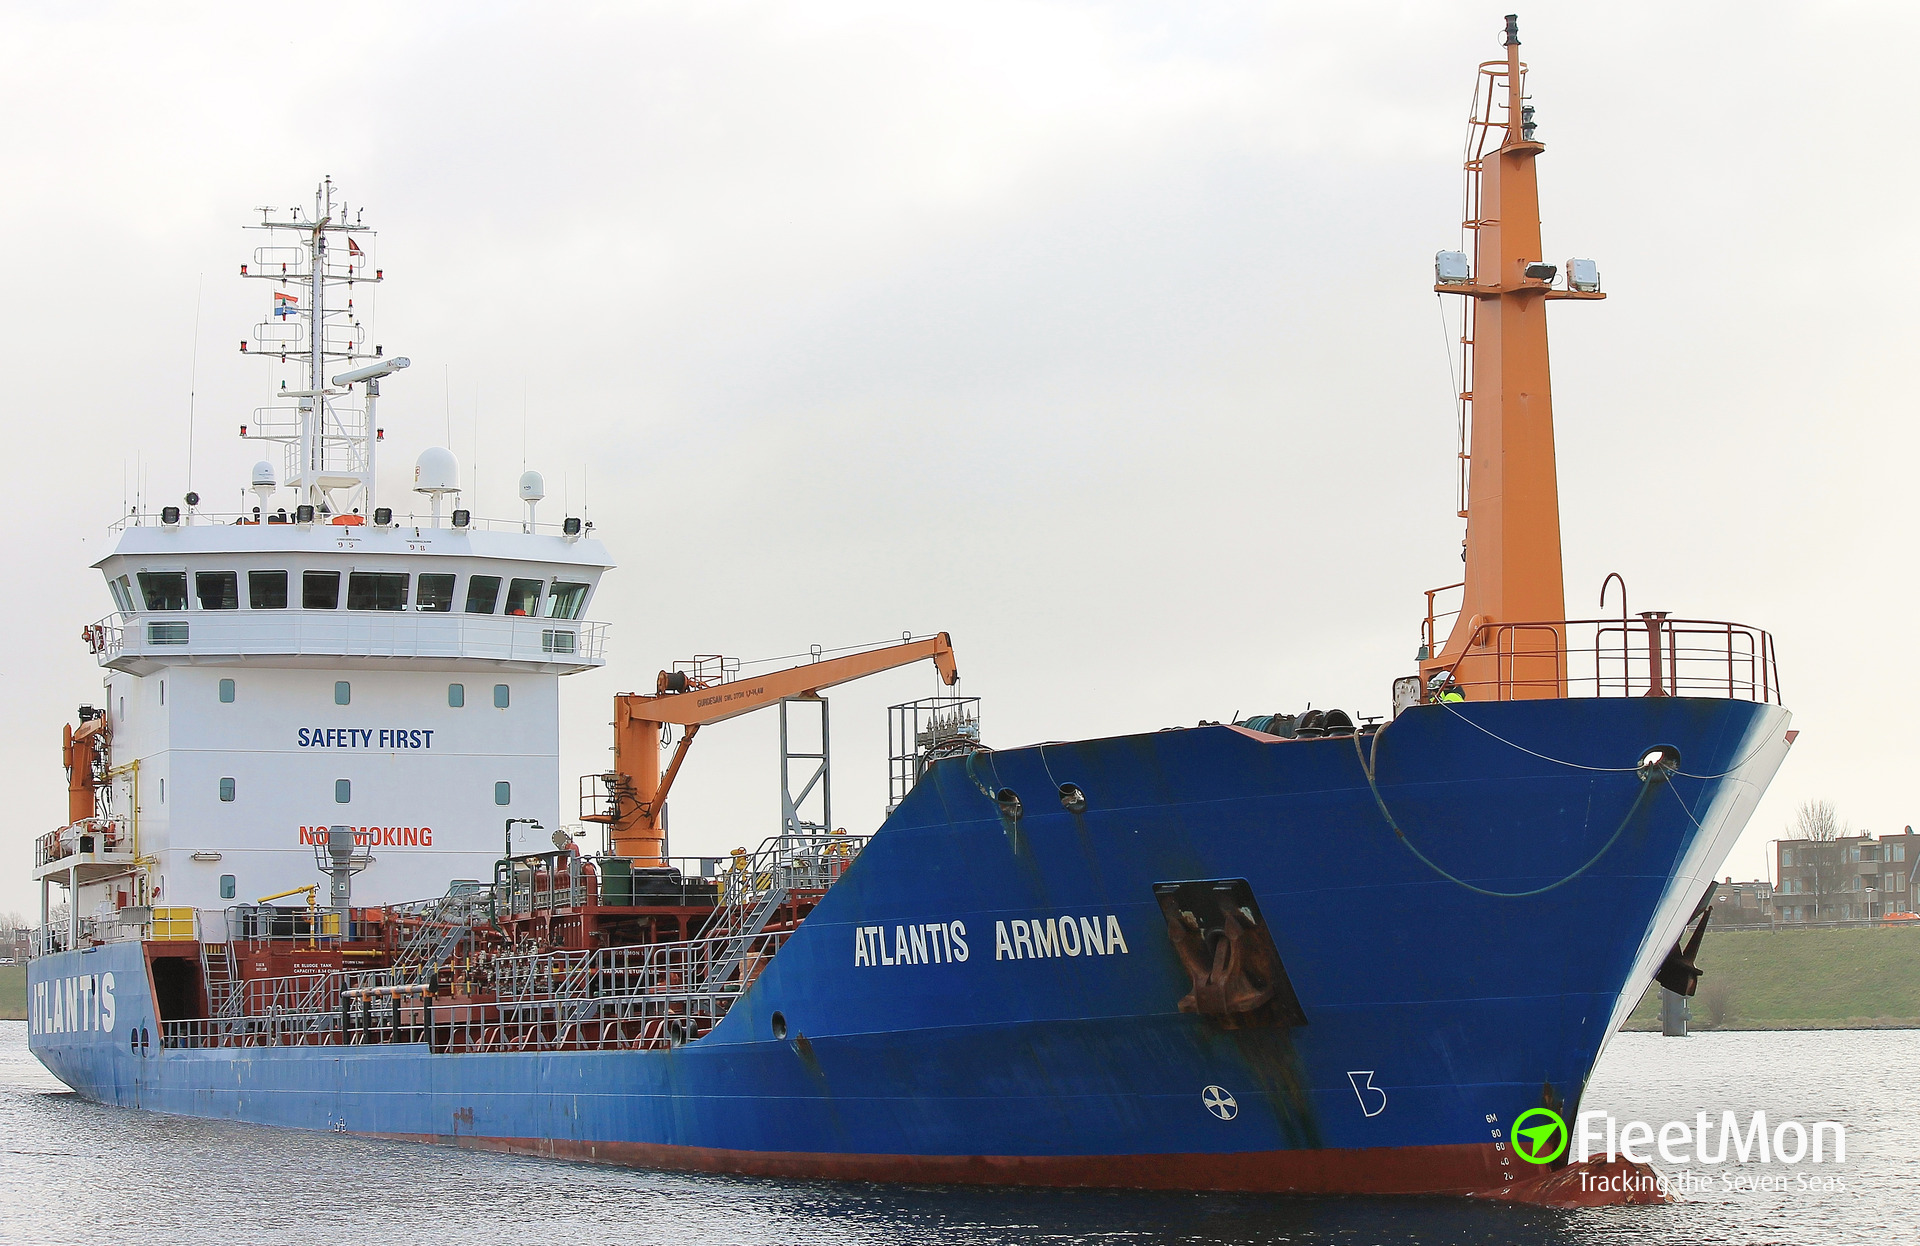 Product tanker ATLANTIS ARMONA troubled, towed to Le Havre